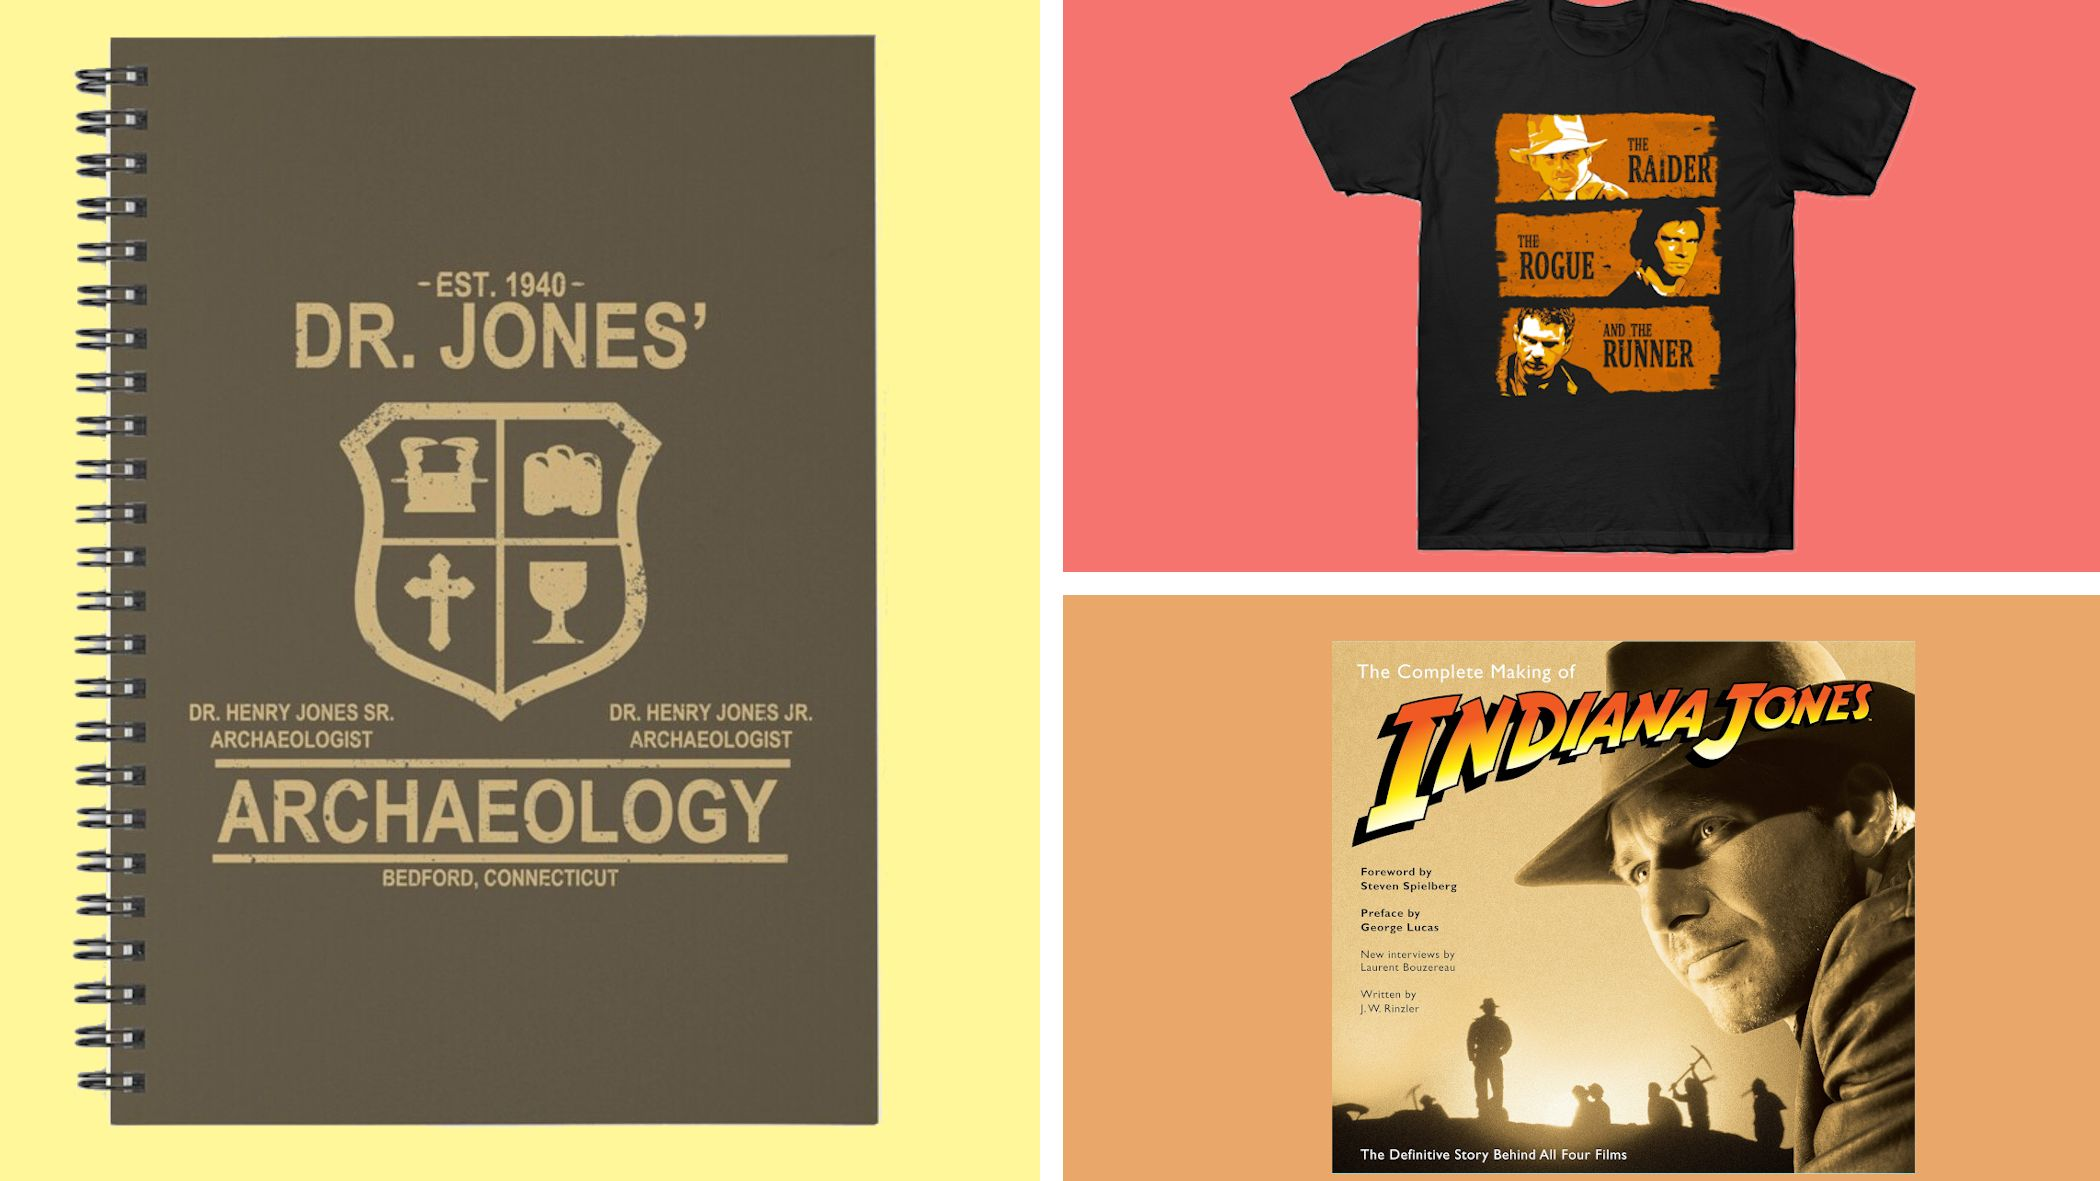 Products for Indiana Jones Fans